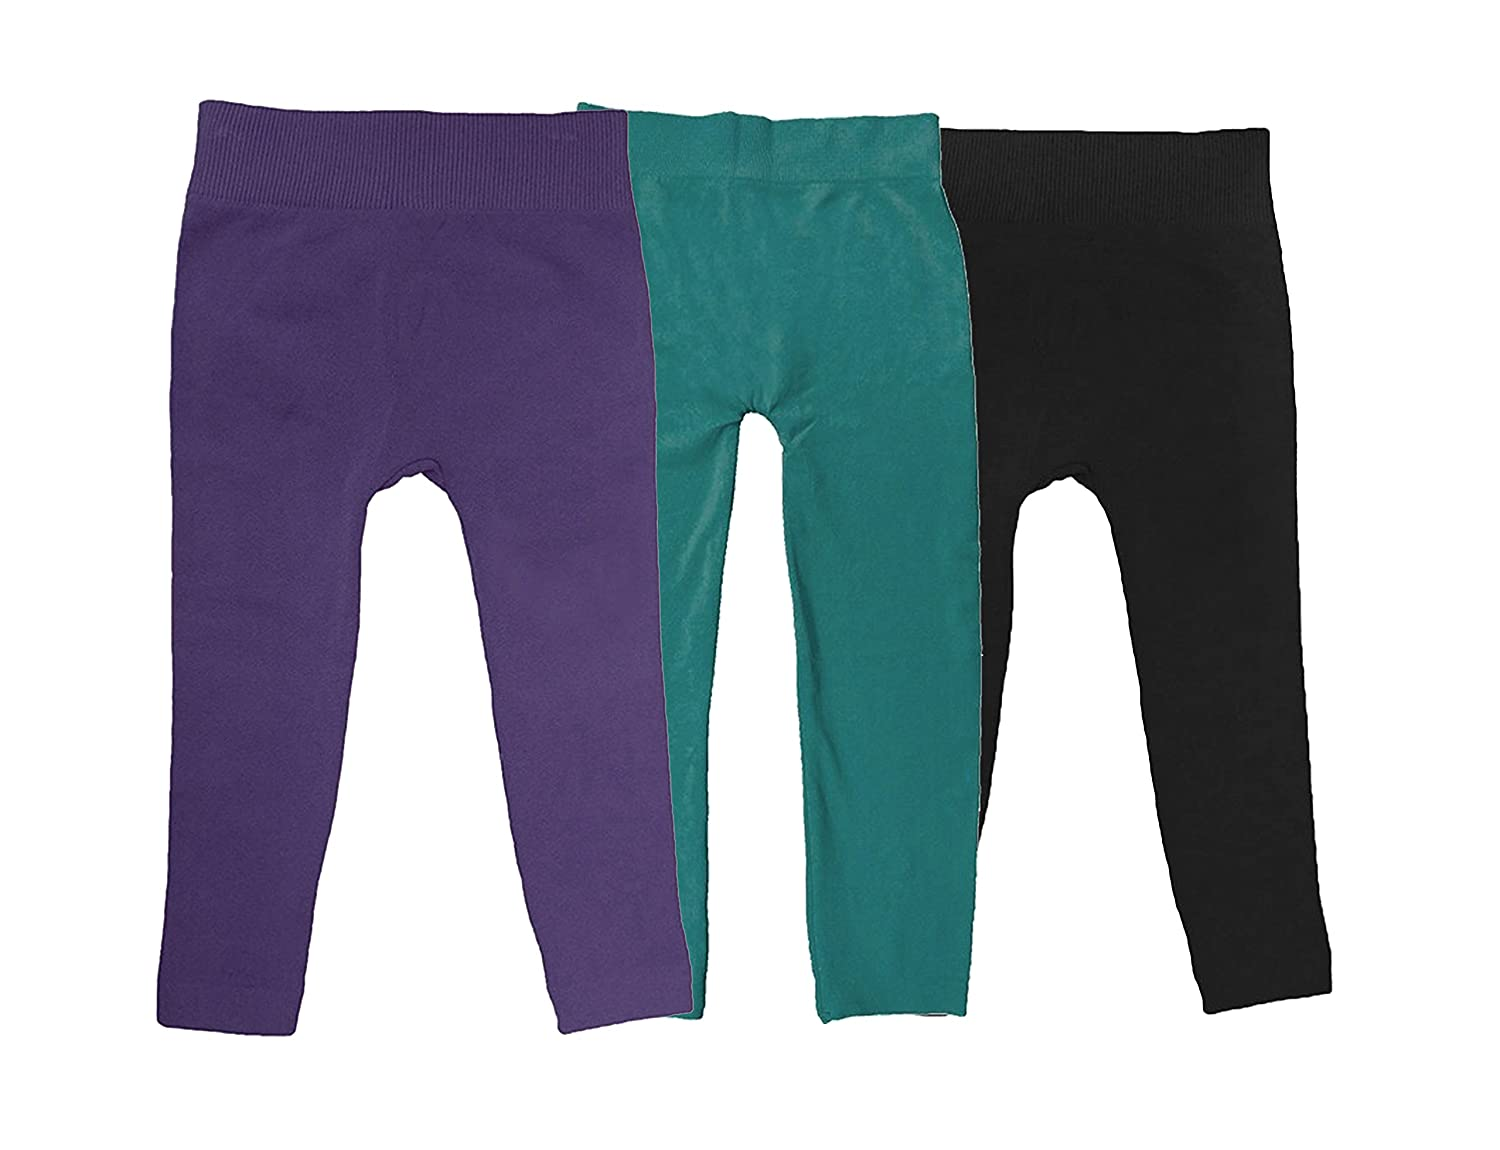 Simply Savvy Co USA - 3pk Thick Quality Fleece Lined Girls Kids Tights Leggings 4-8yrs More Colors